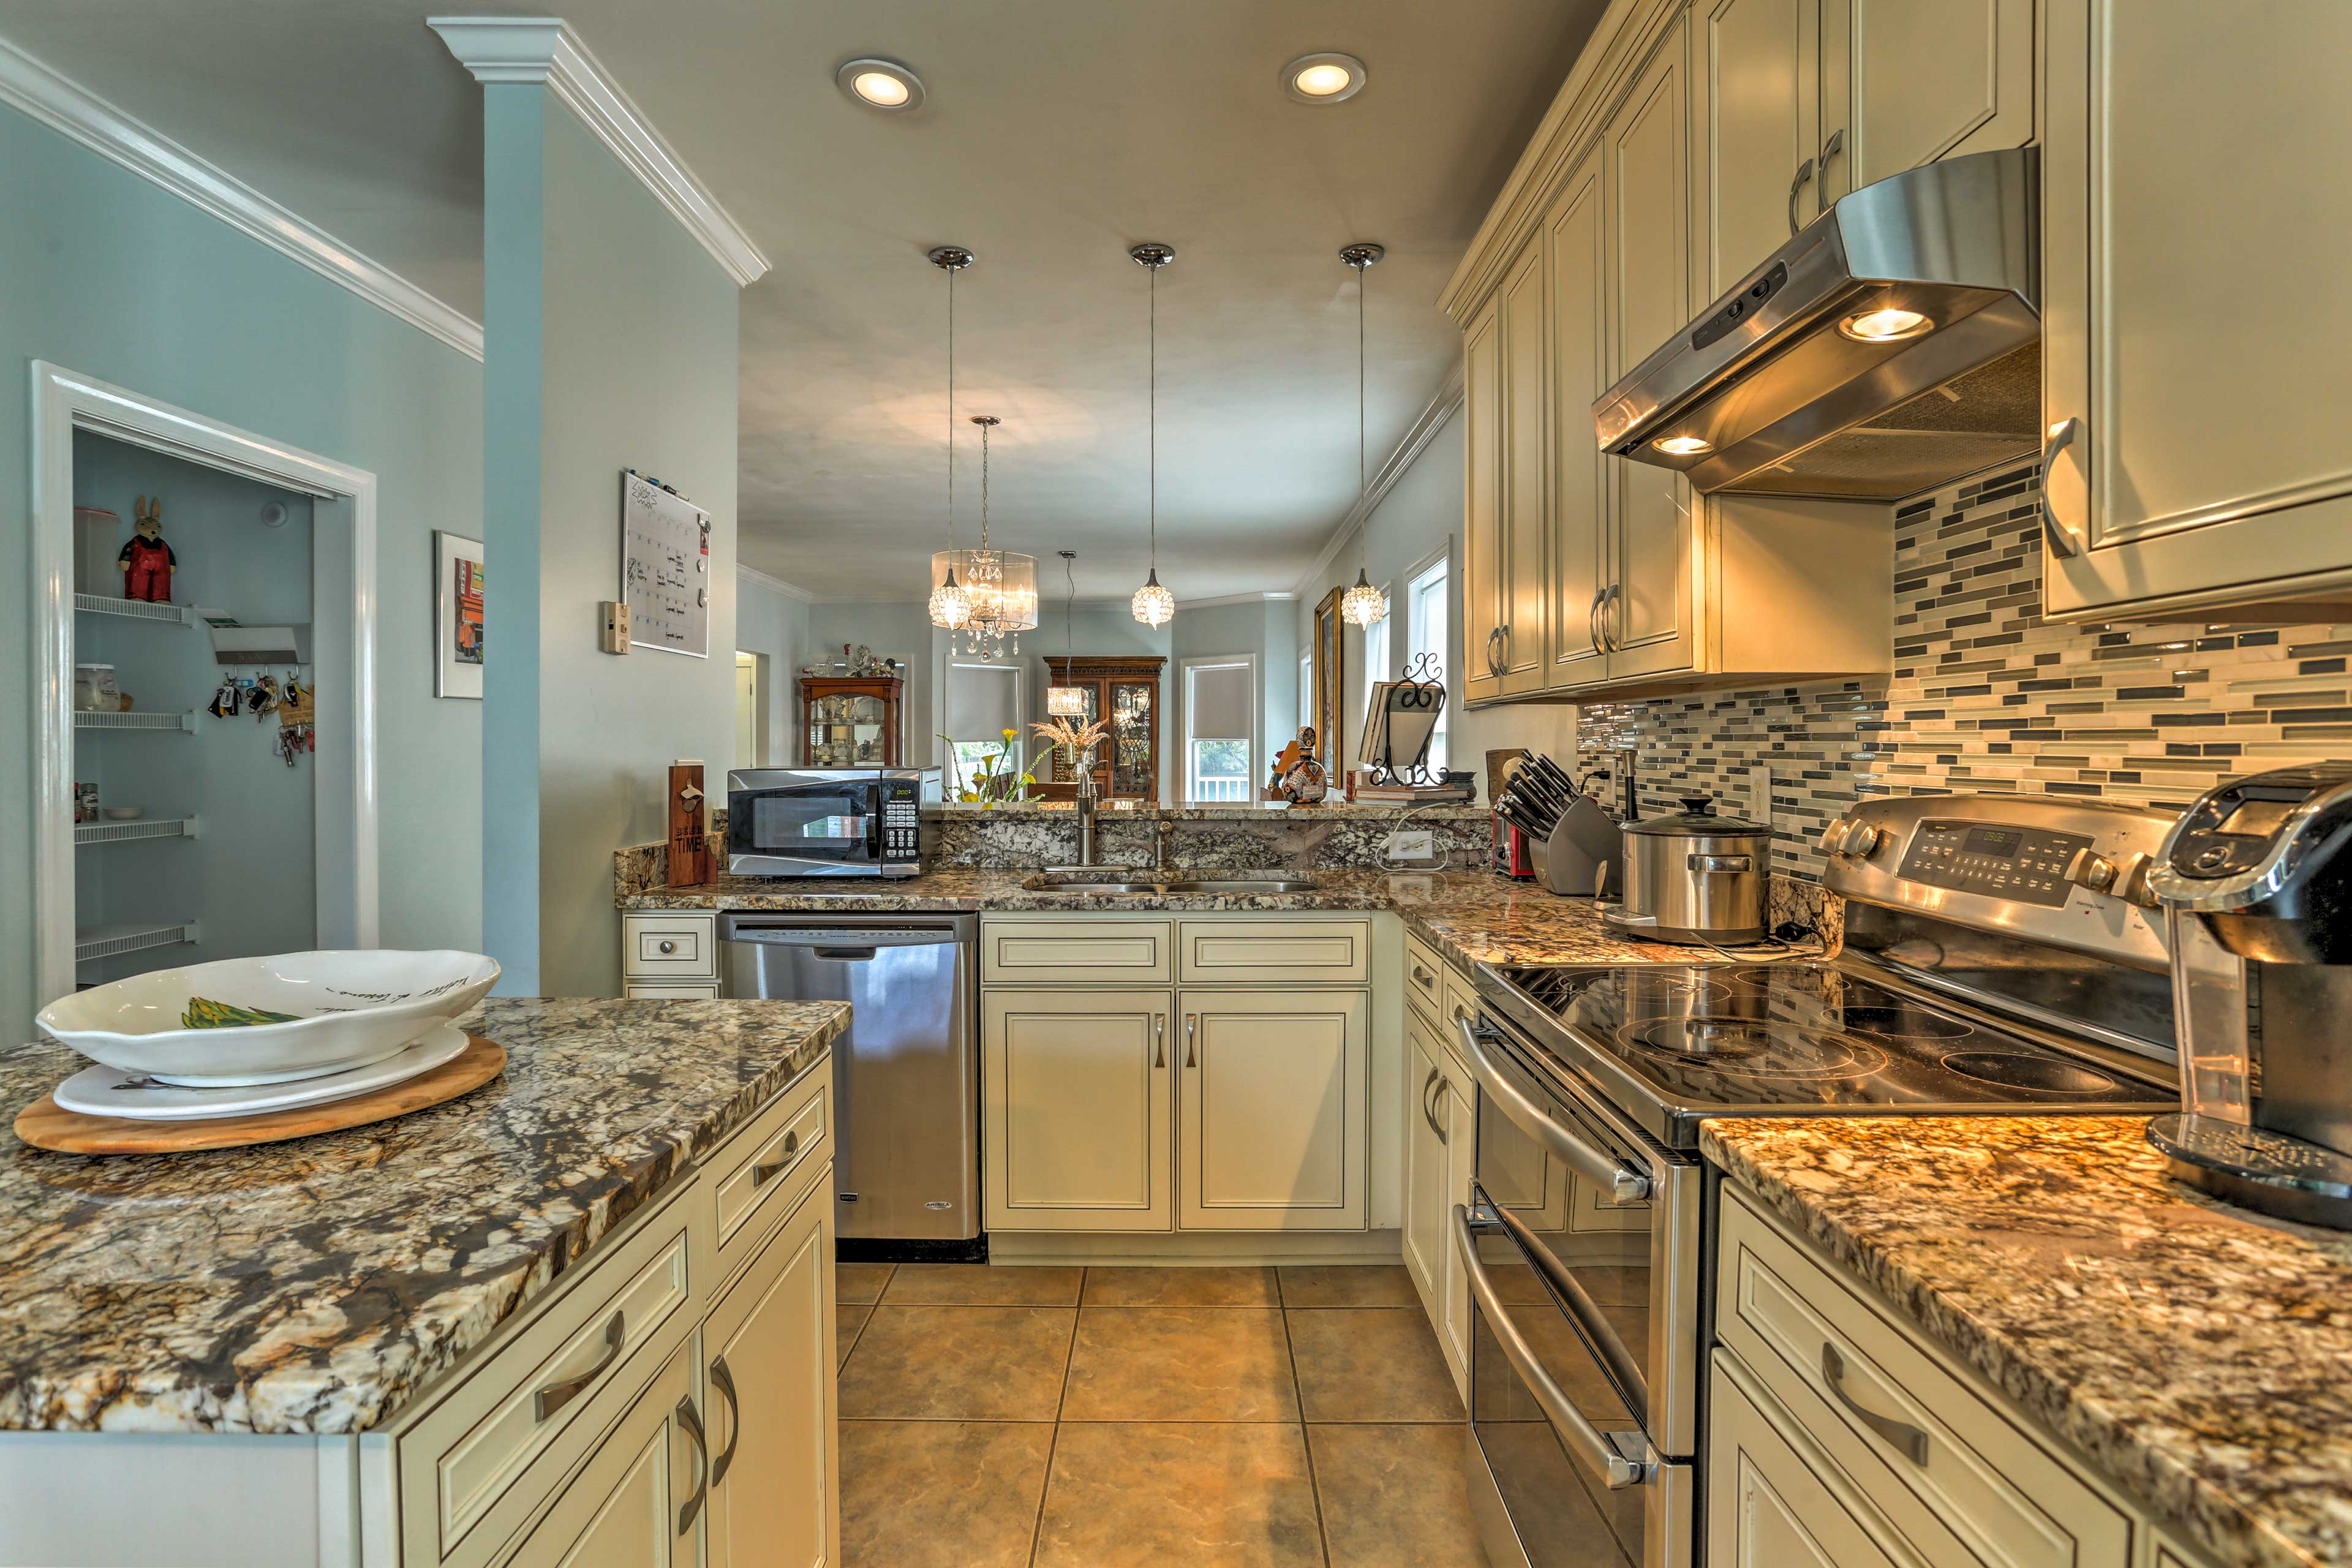 It features granite countertops and stainless steel appliances.